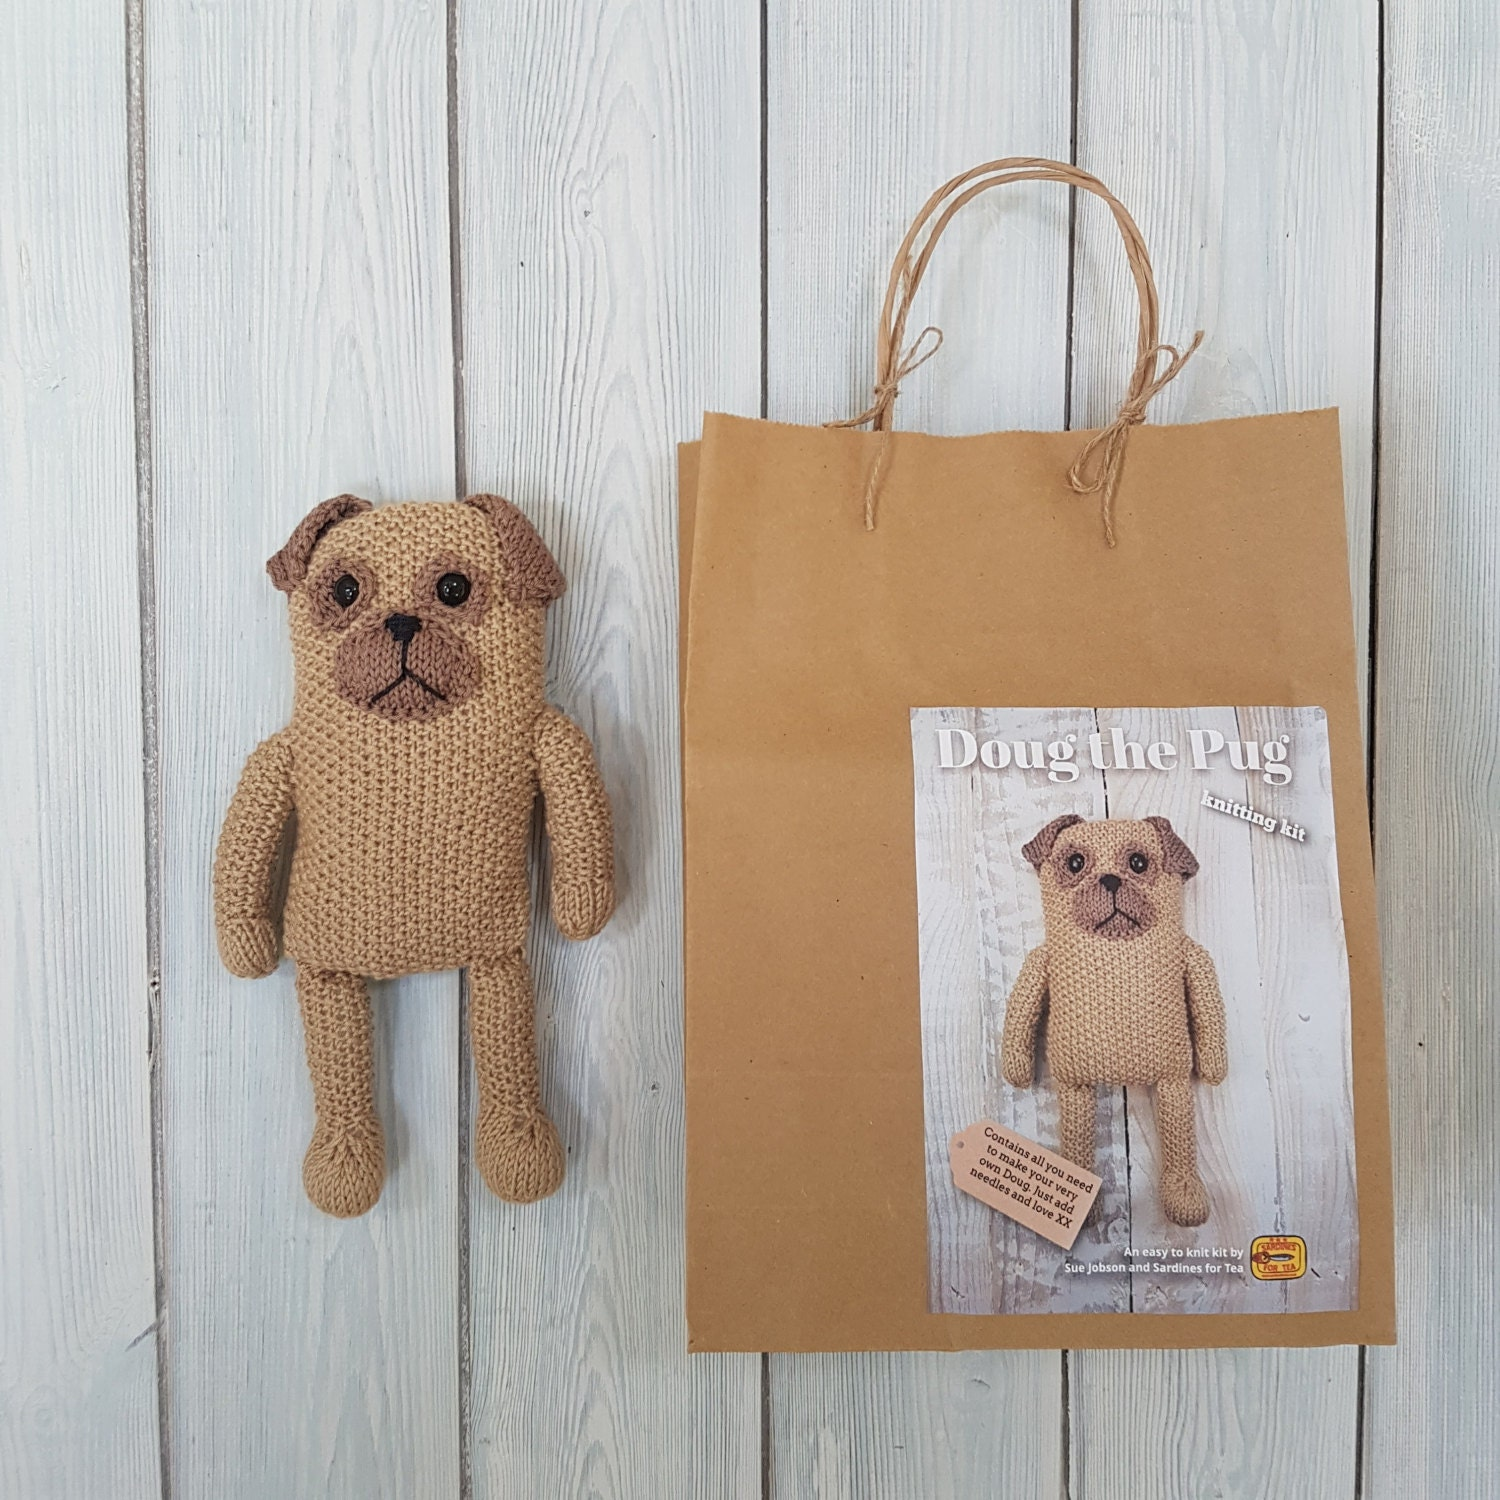 Doug the Pug Knitting Kit Make Your Very Own Pug dog Easy